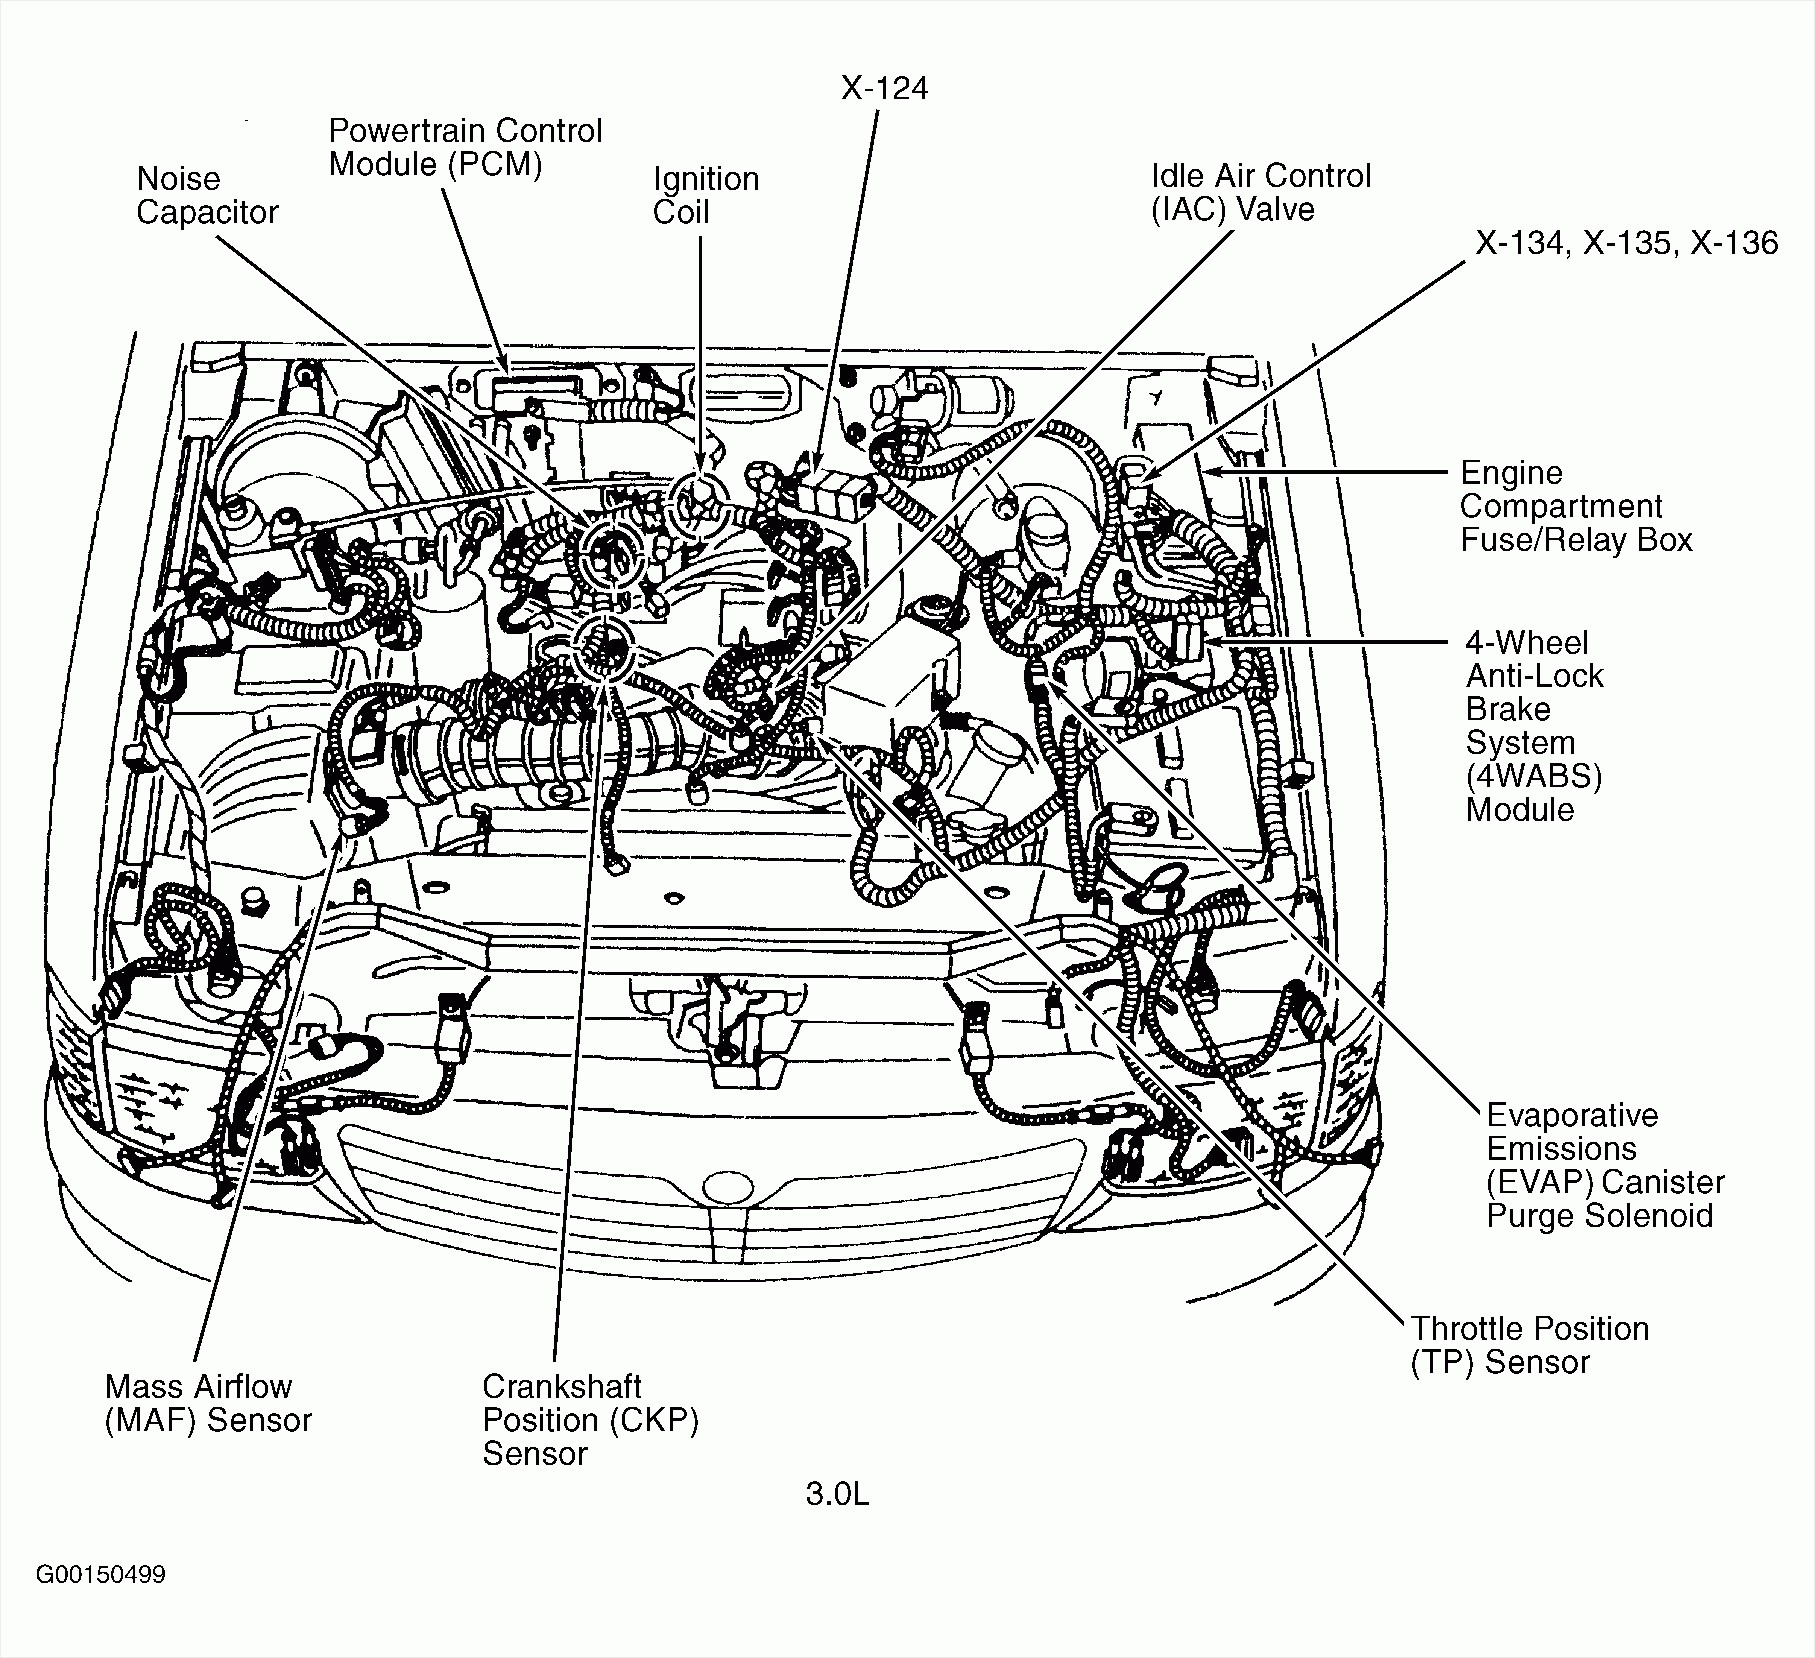 3800 engine diagram intake wiring library 1997 buick lesabre engine diagram gm 3800 engine diagram trusted wiring diagrams u2022 rh shlnk co 3800 engine diagram oil sensor